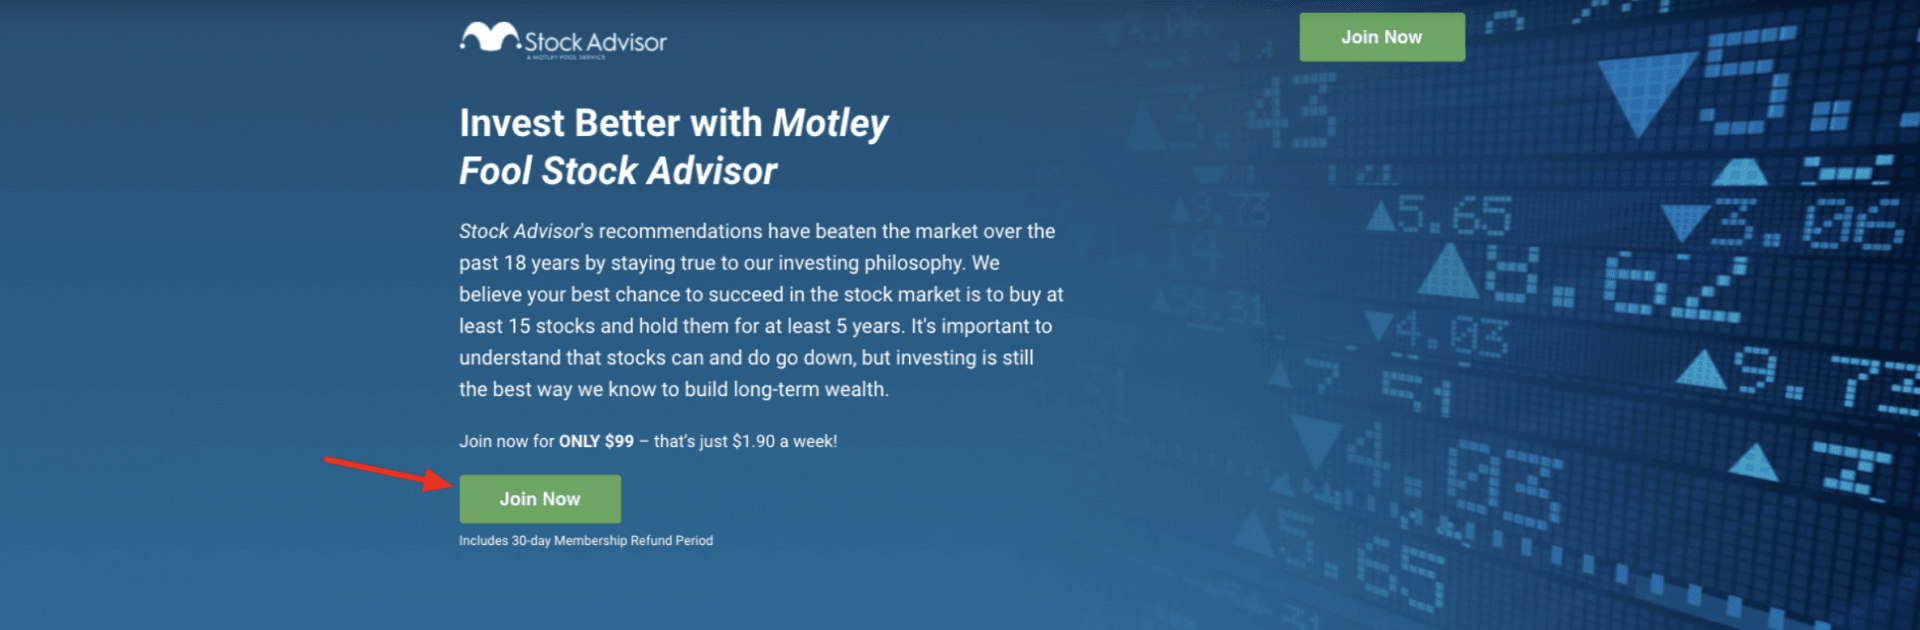 The Motley Fool Stock Advisor Review: Subscription Based Stock Advice For (Almost) Everyone - Join now